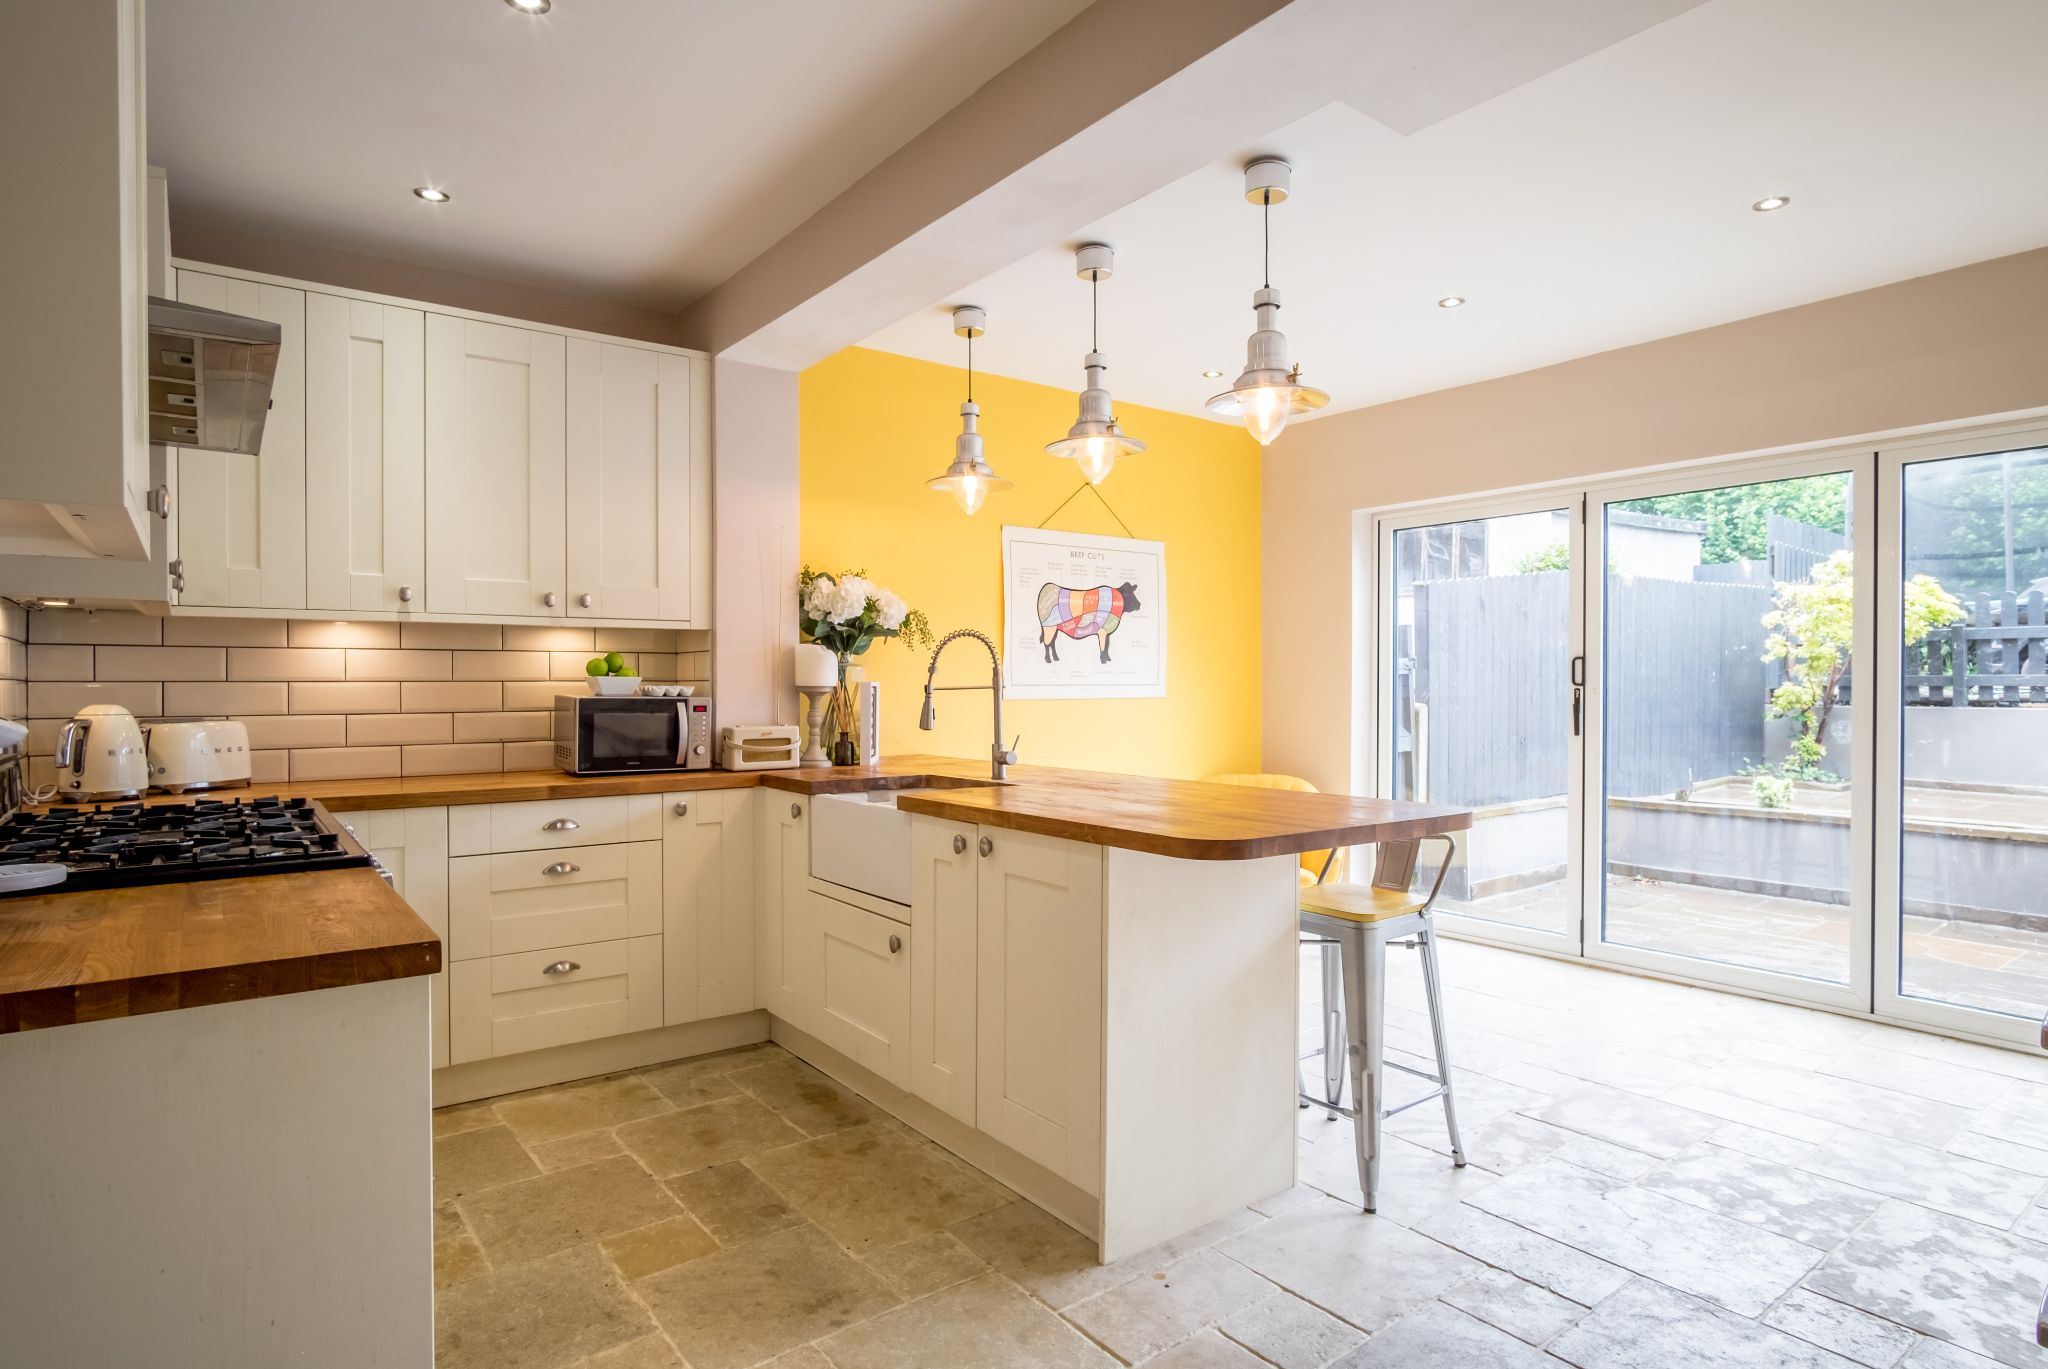 3 bedroom mid terraced house For Sale in Halifax - Kitchen area